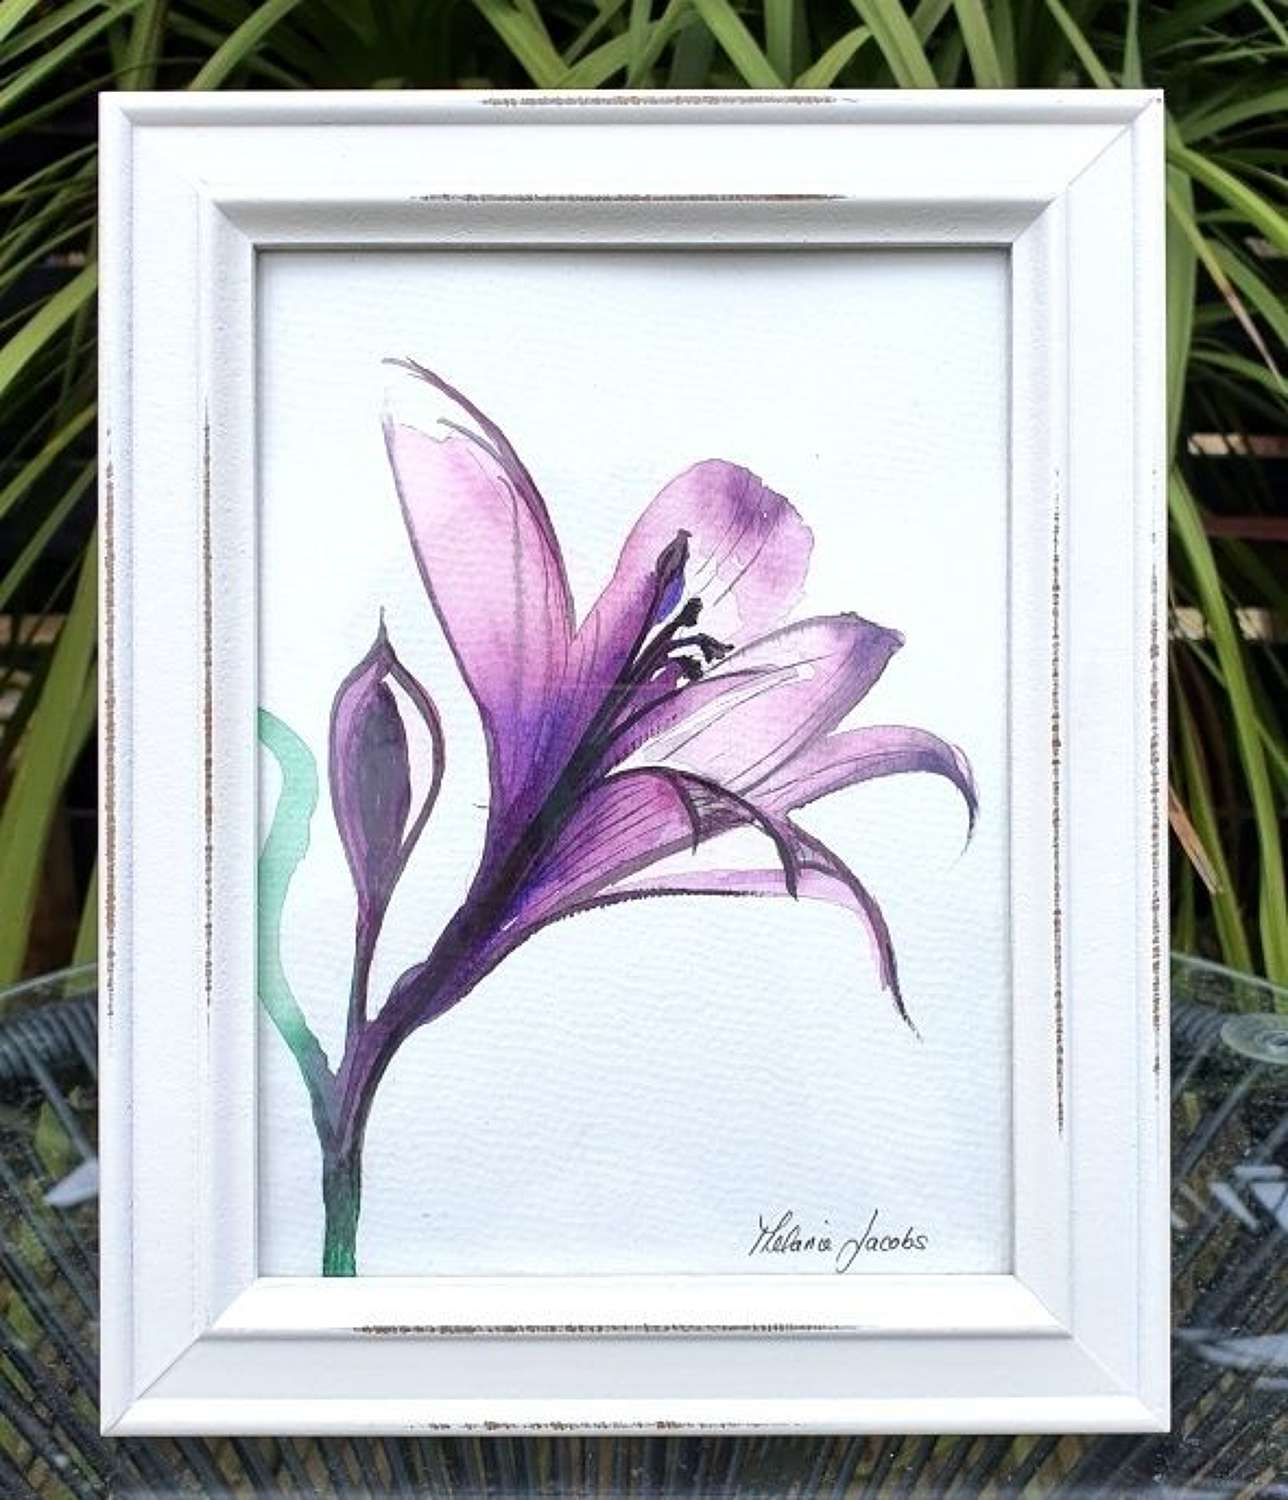 With Love- Original Watercolour Painting by Melanie Jacobs